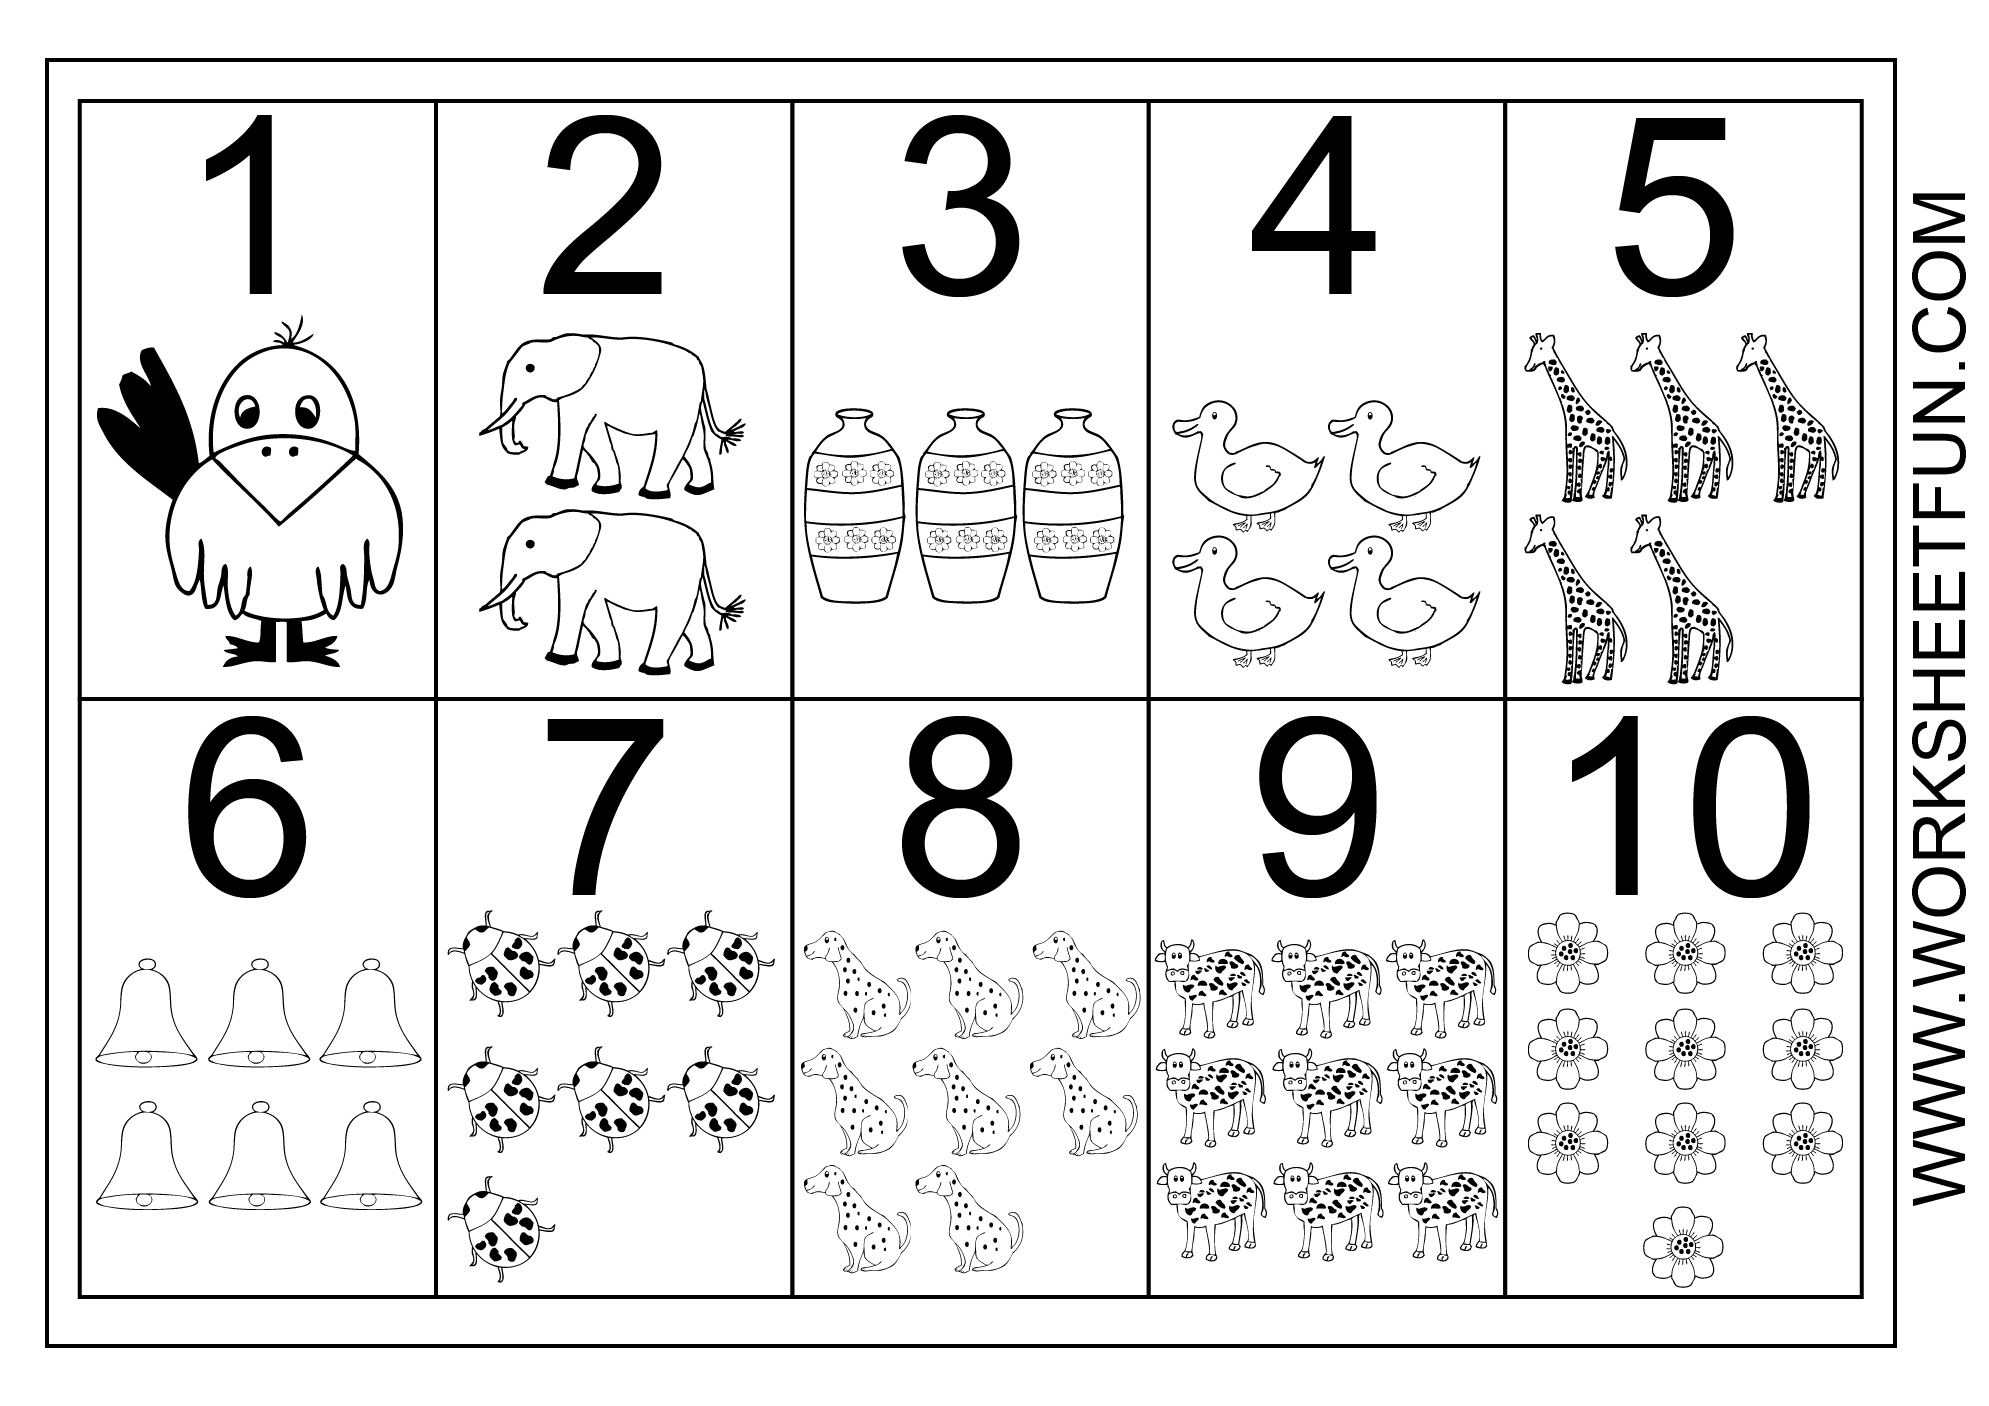 Picture Number Chart 1-10 | Printable Worksheets | Numbers Preschool | Printable Worksheets For Preschoolers On Numbers 1 10